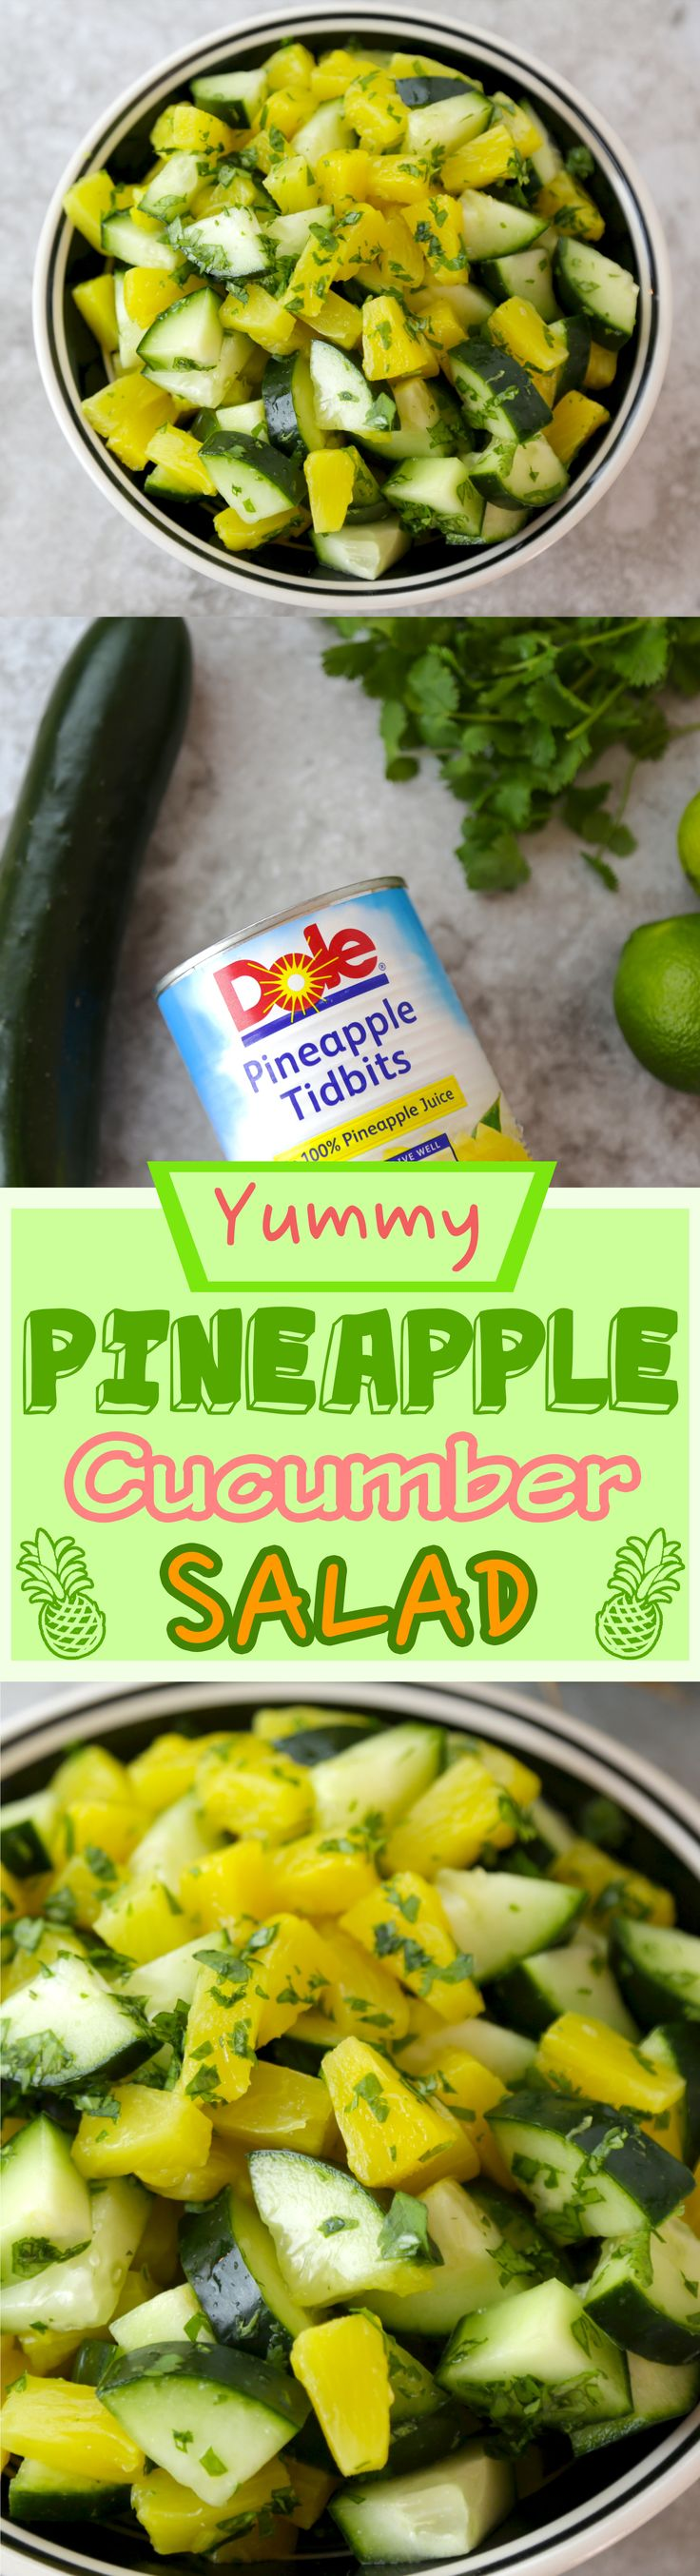 If you've been looking for a new and exciting salad this spring, you have scrolled to the right place. Our DOLE® Pineapple and Cucumber Salad is everything you want.